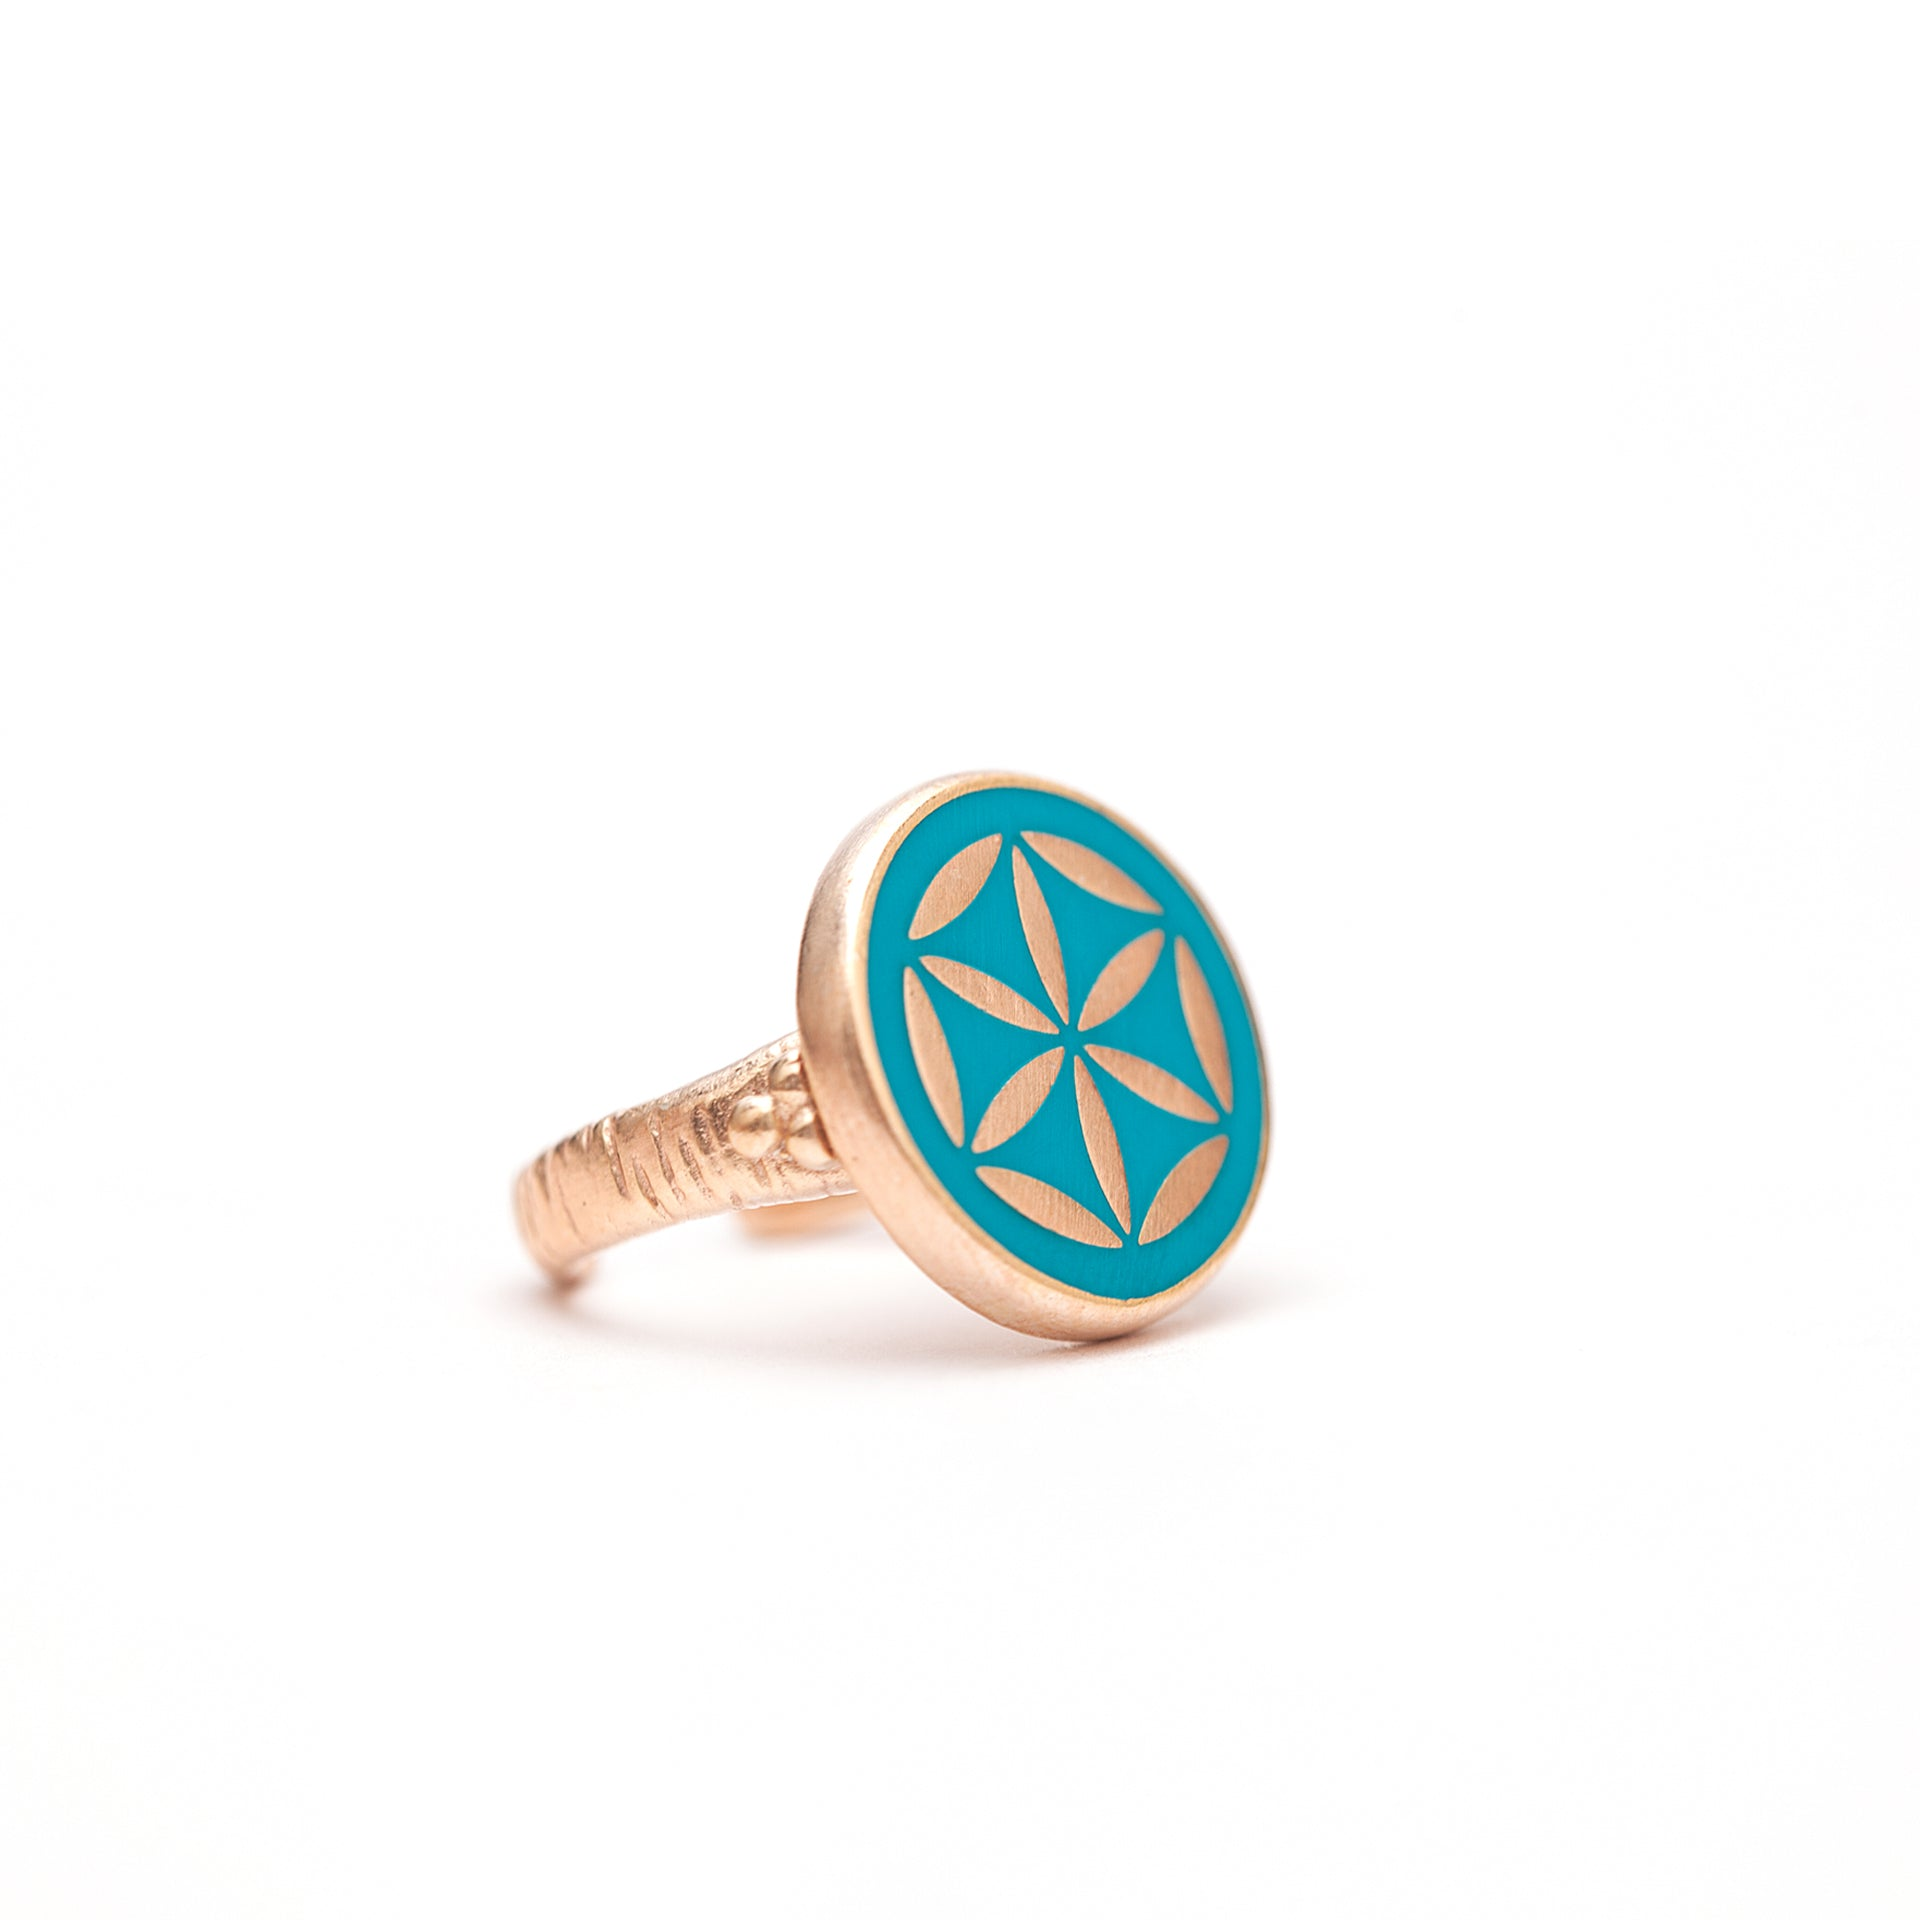 Mineli Yüzük - Yaşam Çiçeği (Evrenin Sırrı)   Enamel Ring - The Flower of Life (The Secret of the Universe)